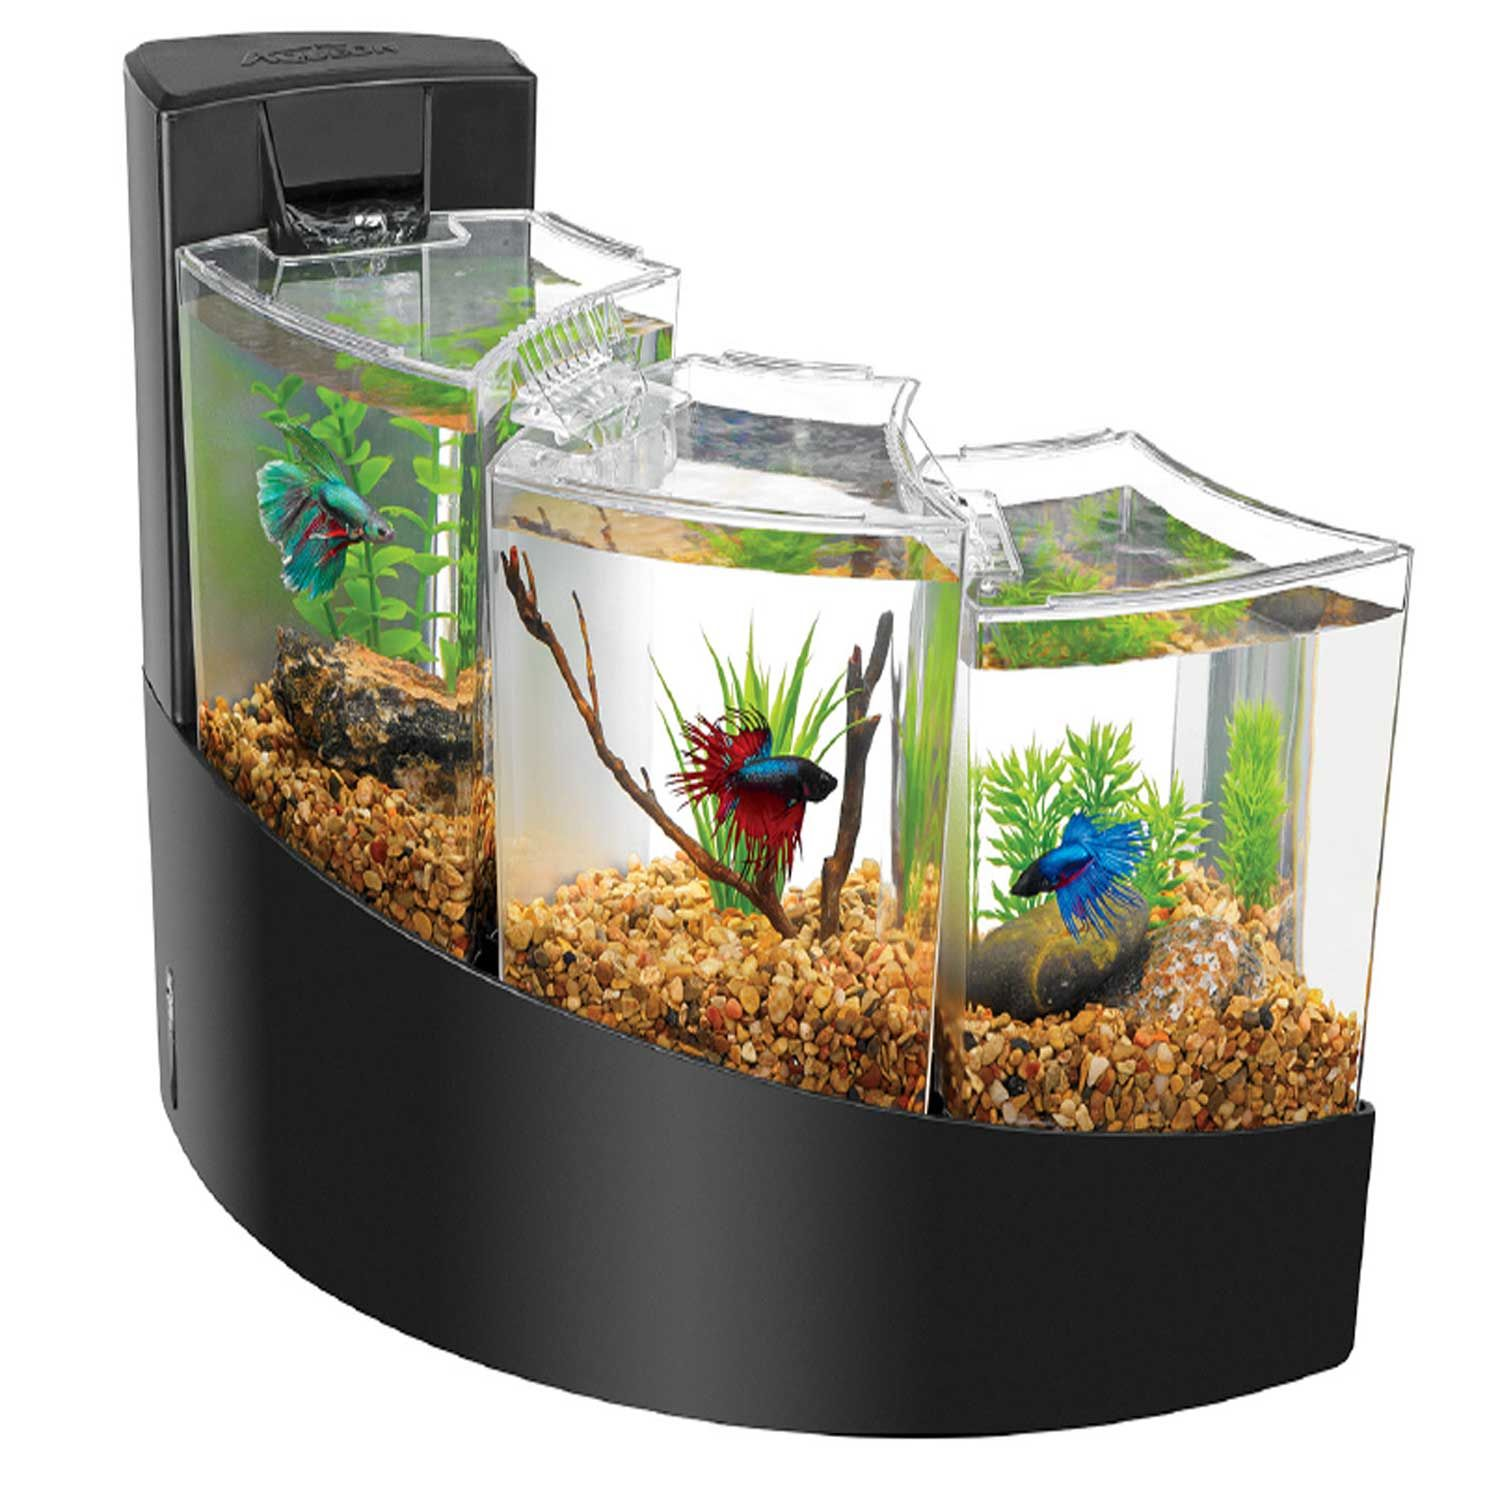 Aquaculture on pinterest betta aquarium and aquarium fish for 2 gallon betta fish tank